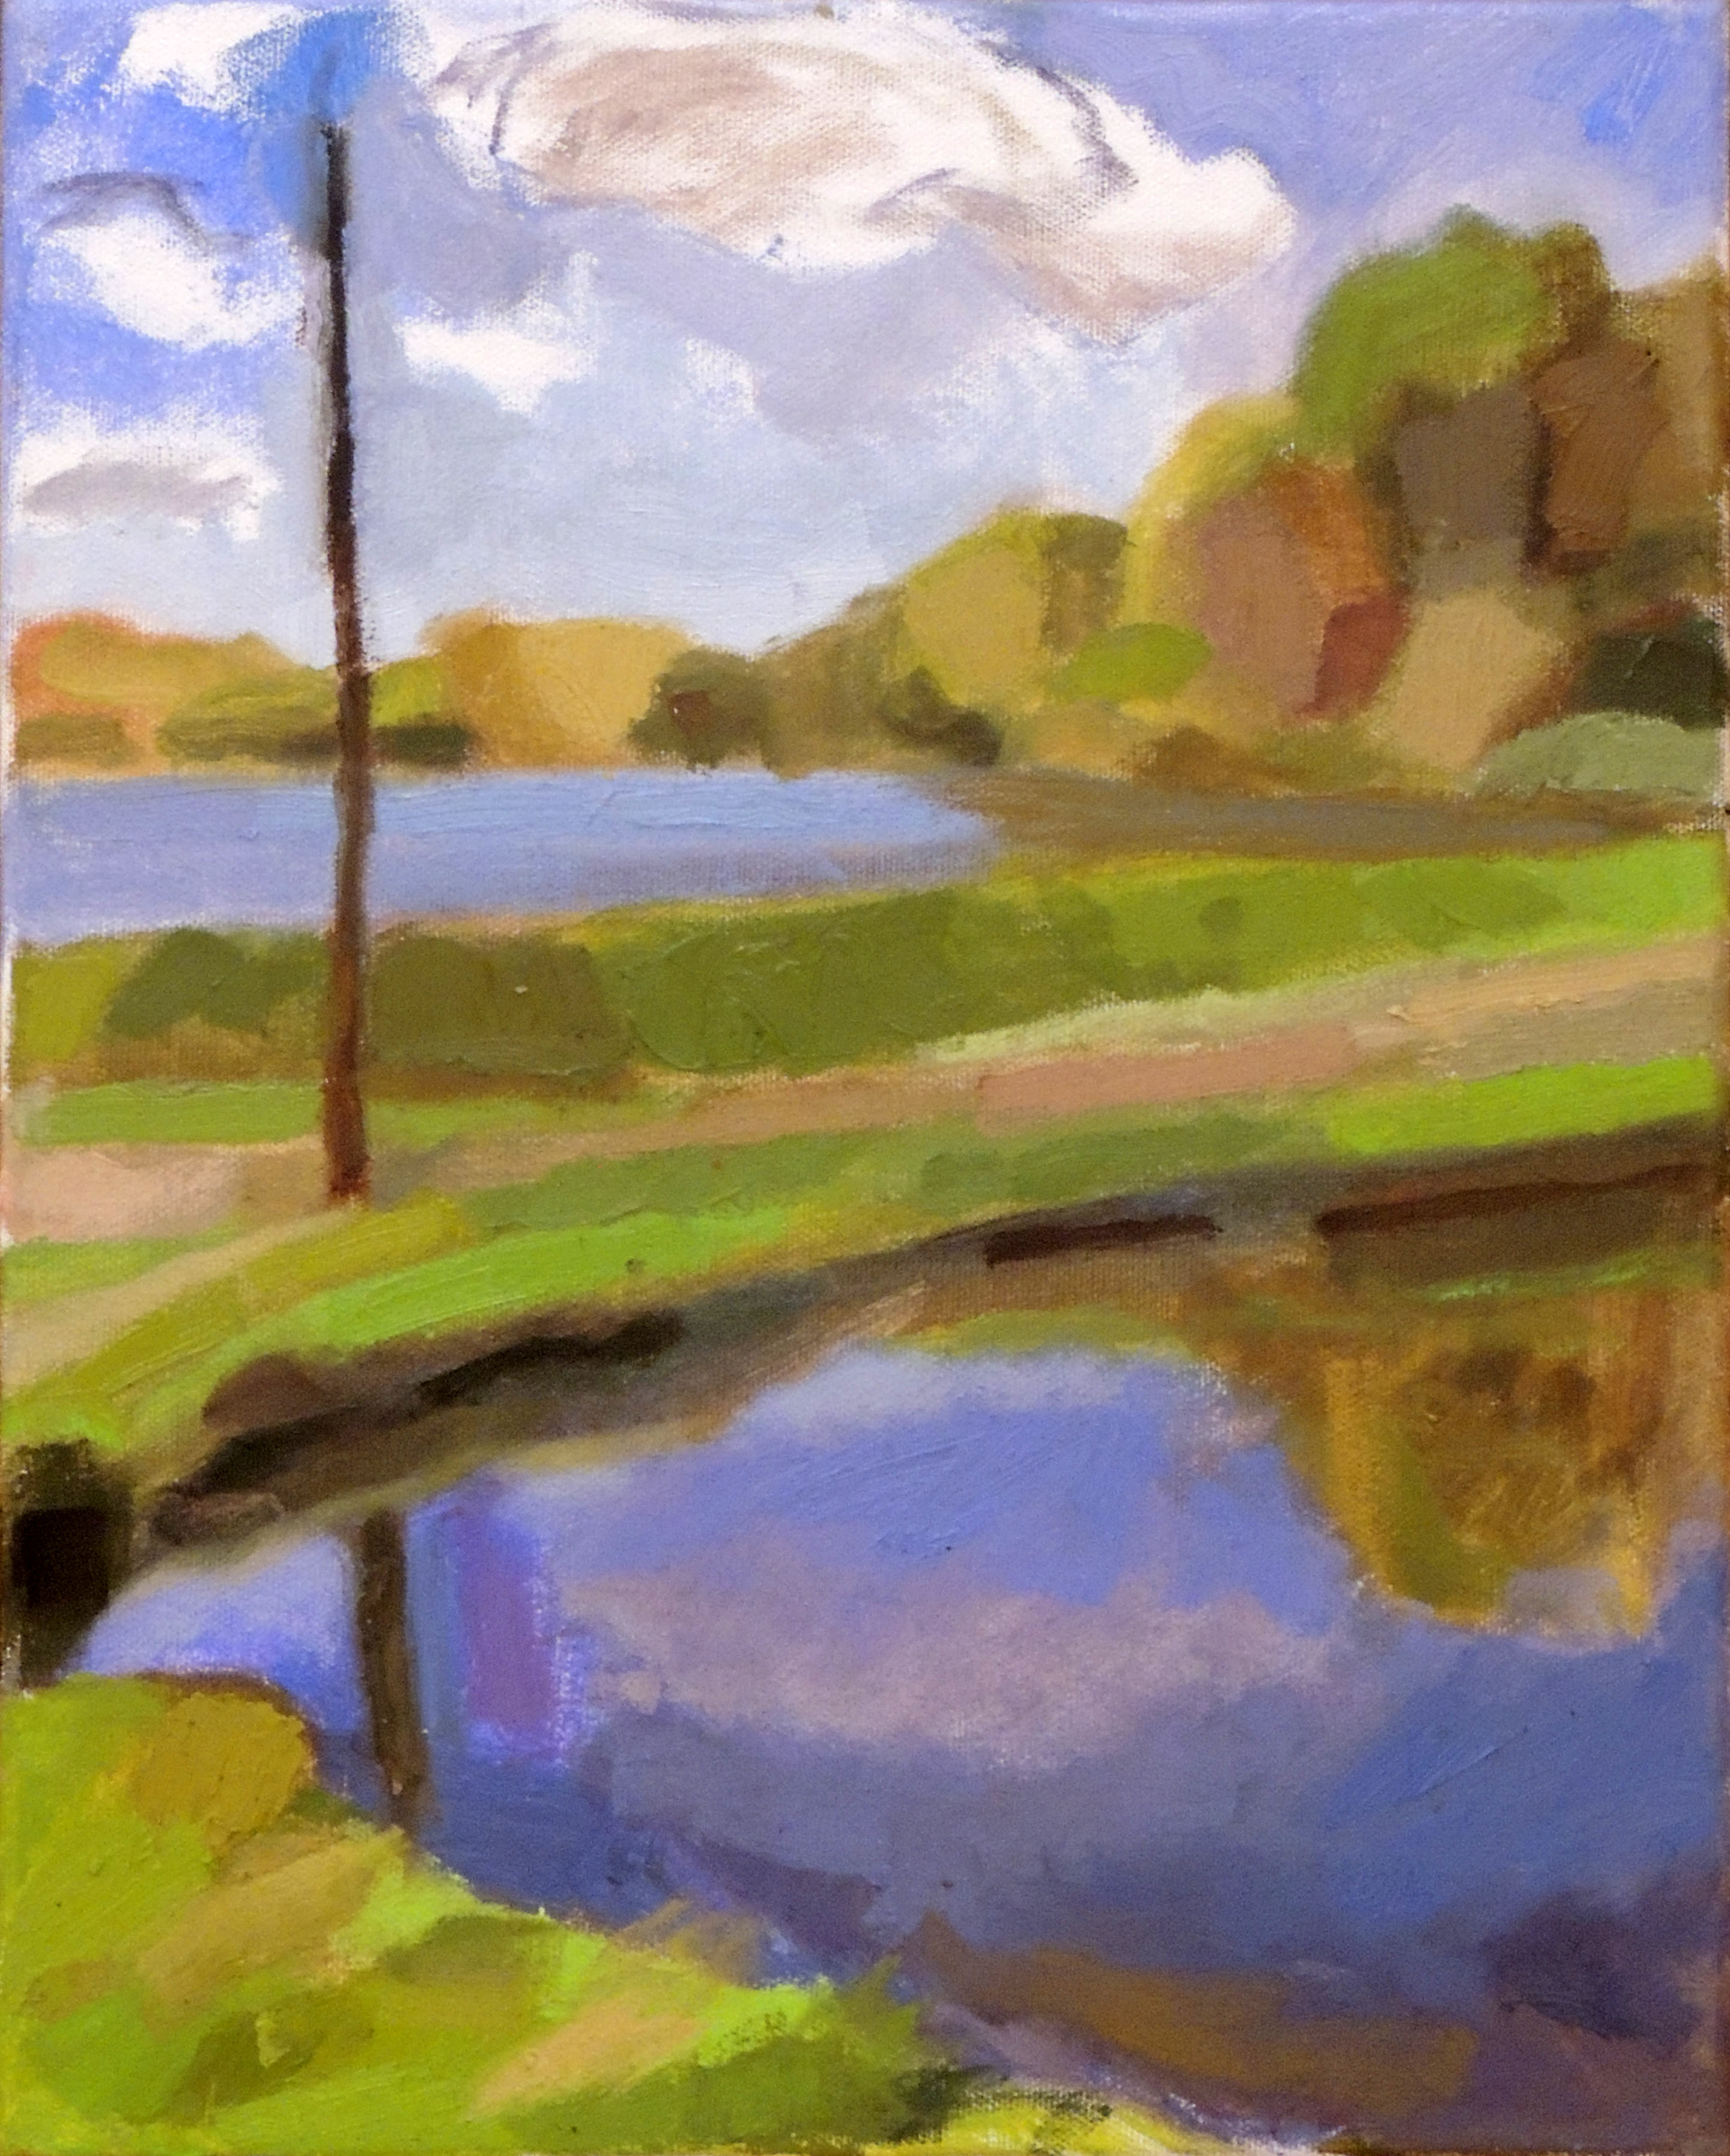 Penny Park | FALL MORNING BY THE LAKE | Oil on canvas